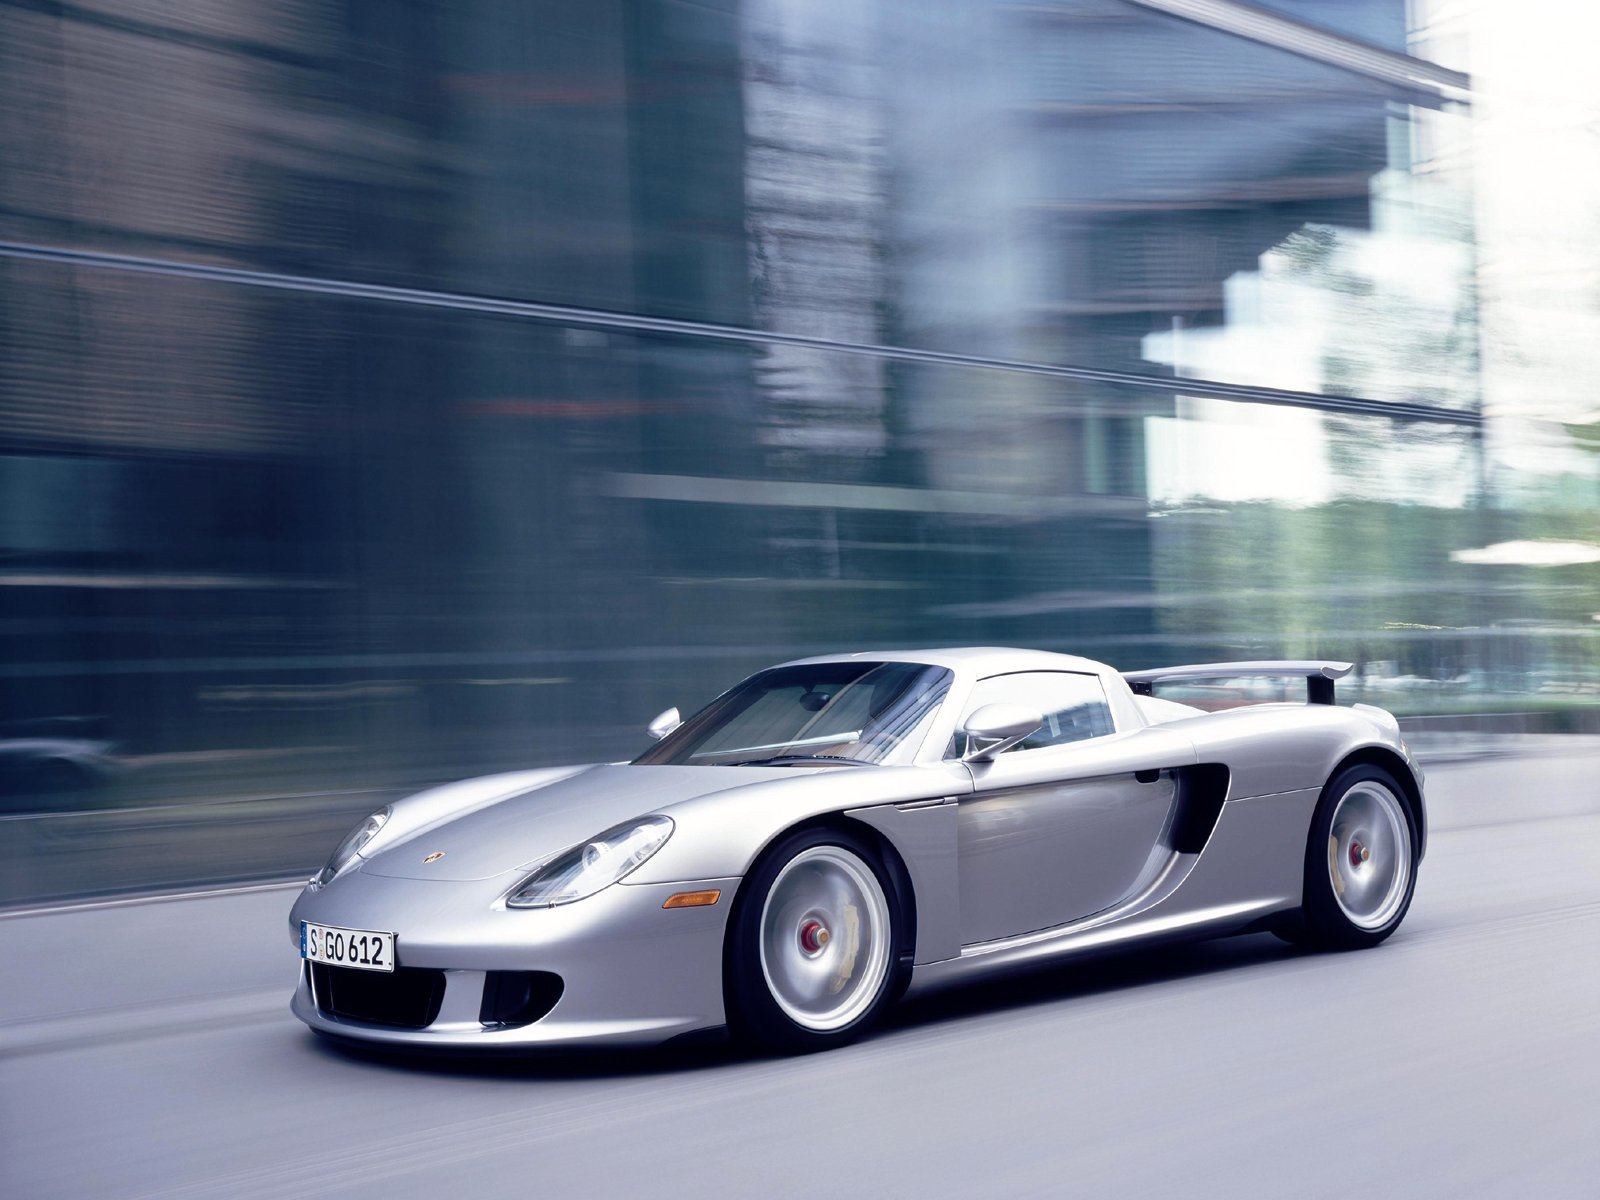 You can vote for this Porsche Carrera GT photo